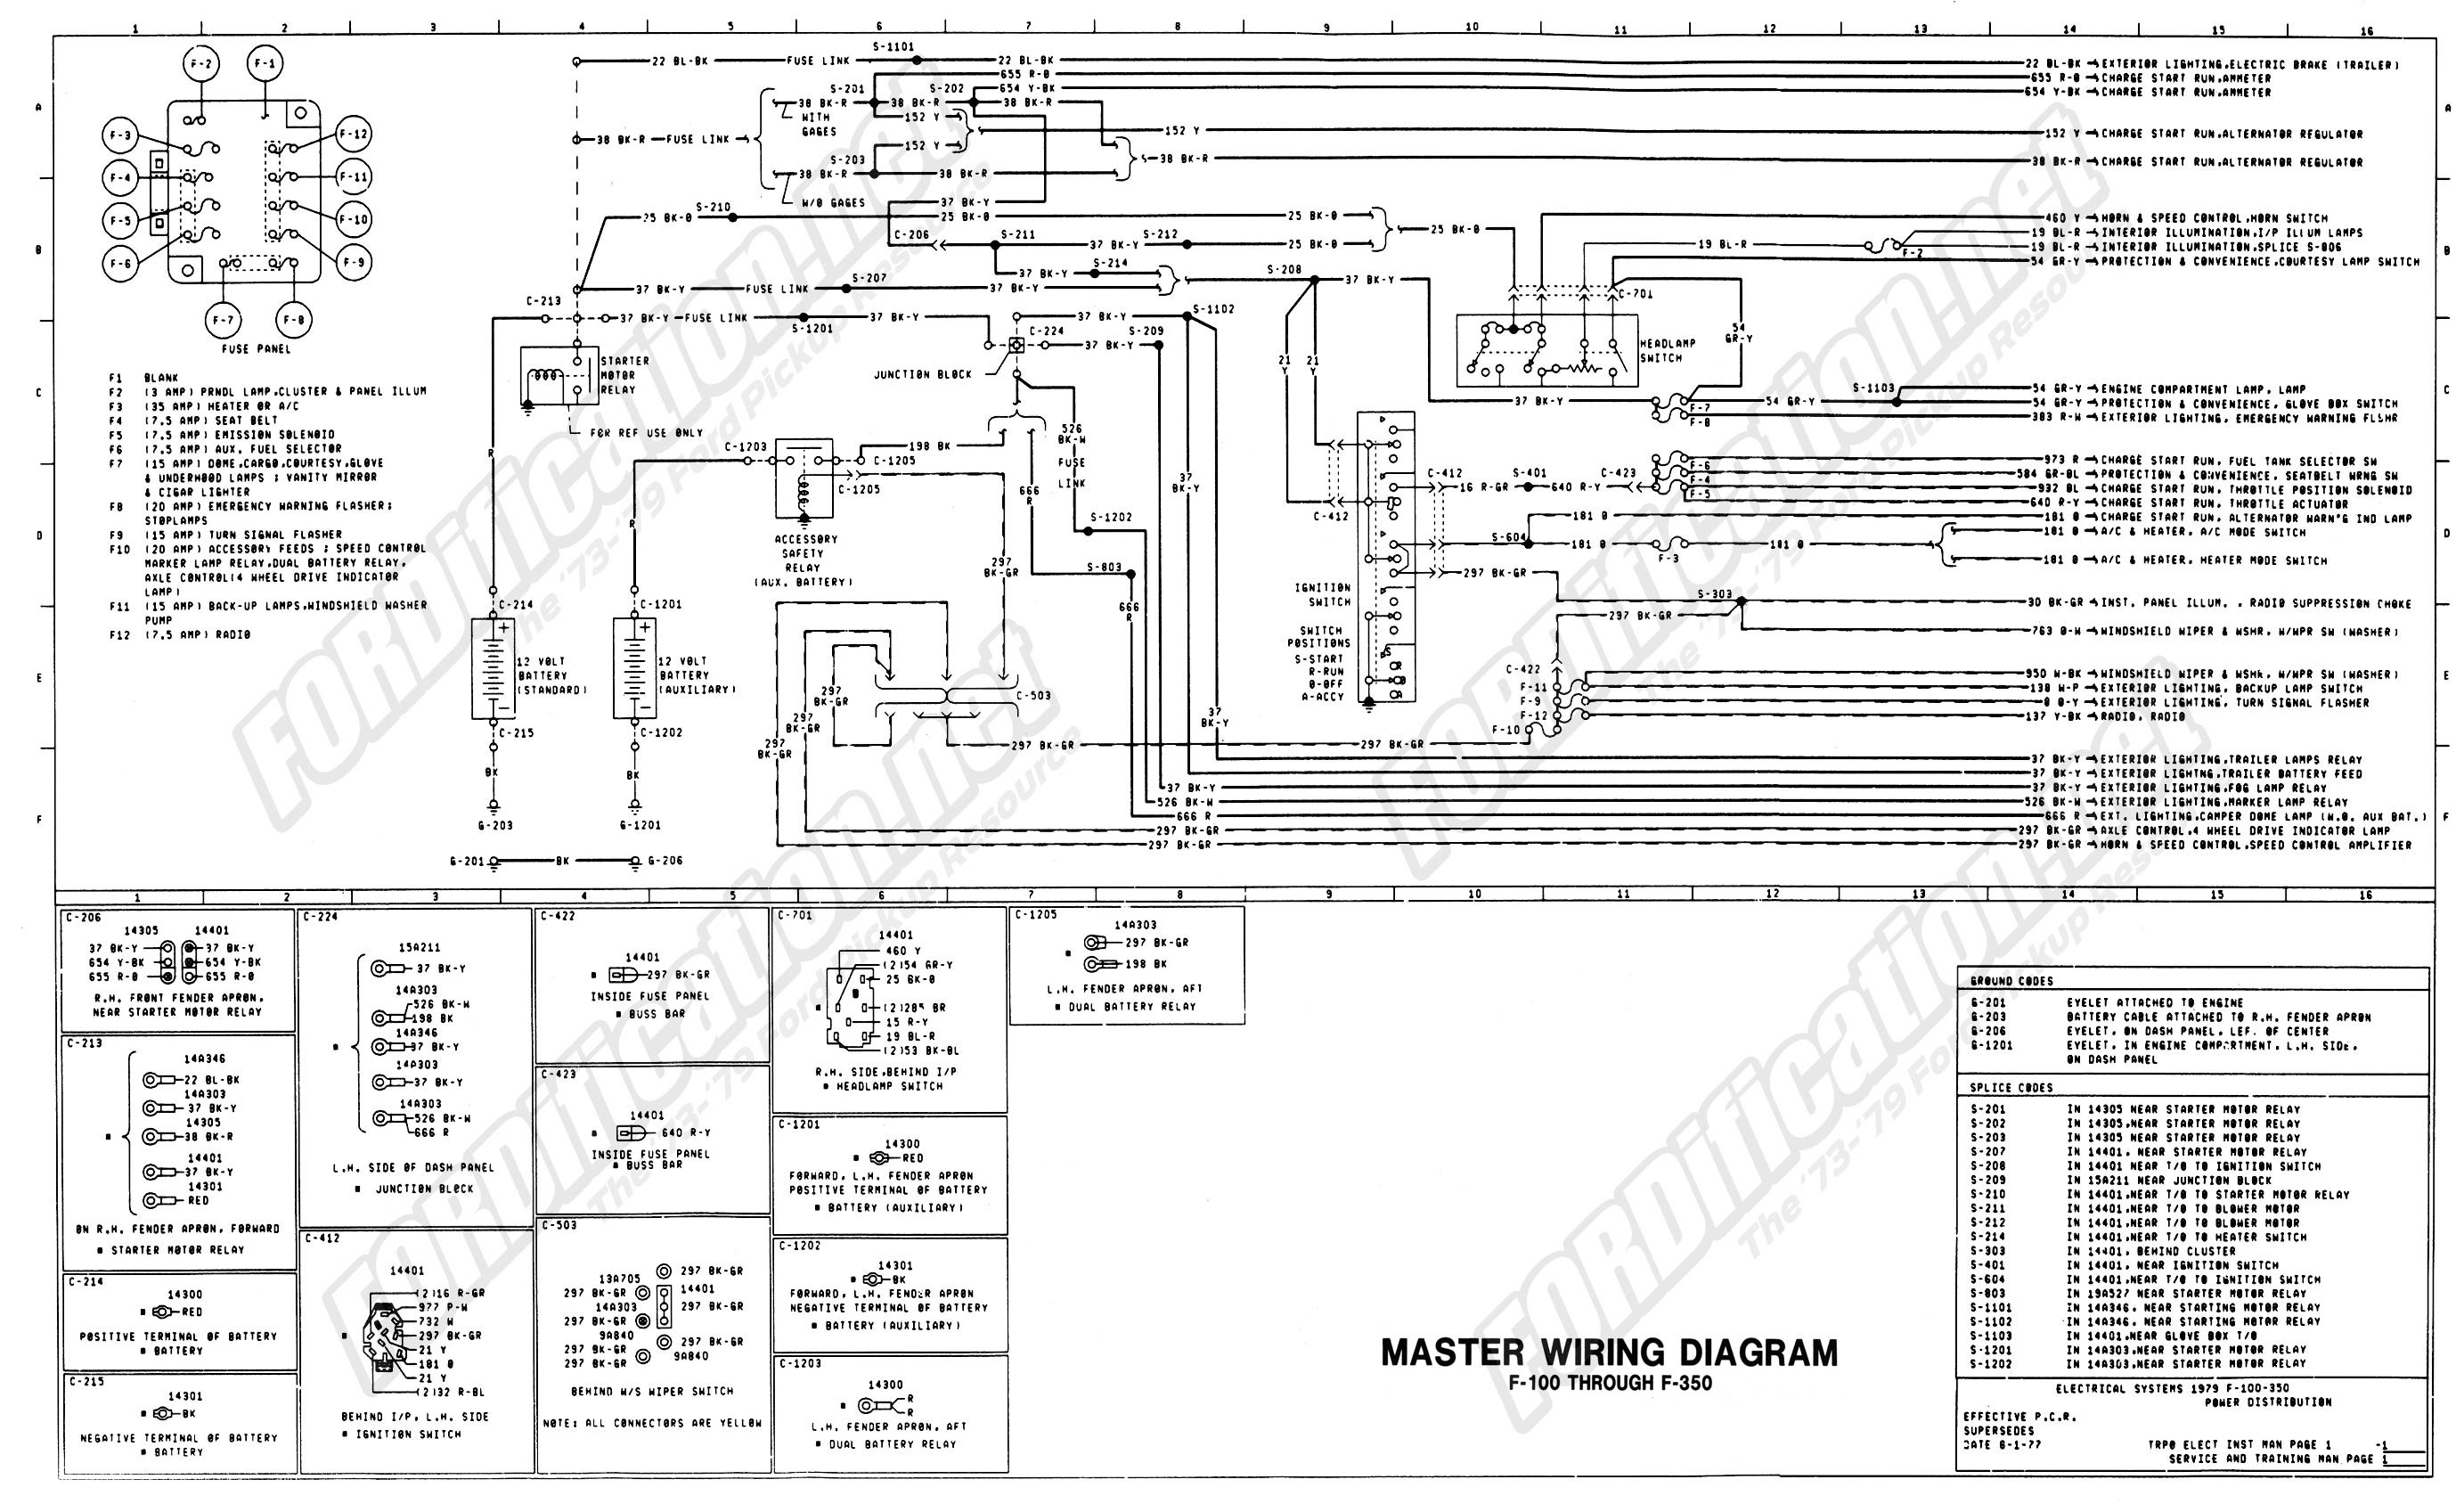 Ford F250 Tail Light Wiring 1973 1979 ford Truck Wiring Diagrams & Schematics Of Ford F250 Tail Light Wiring